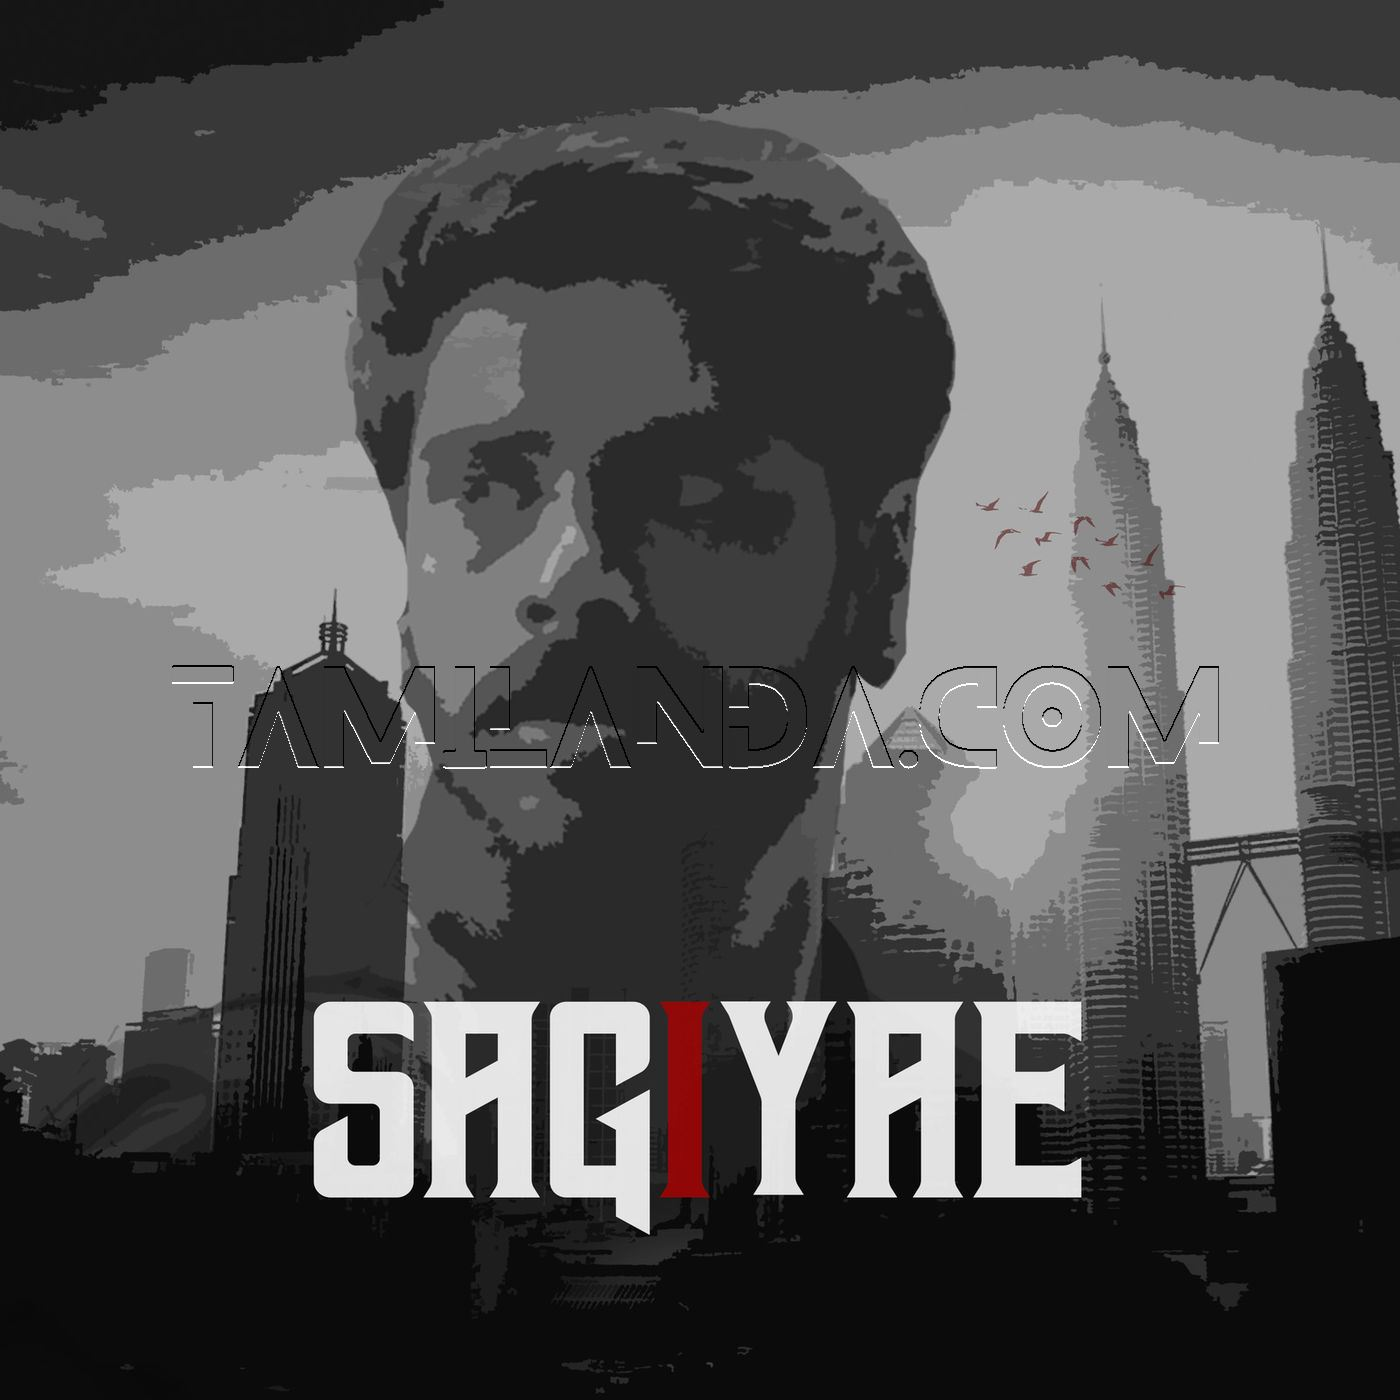 Sagiyae – Single FLAC Song